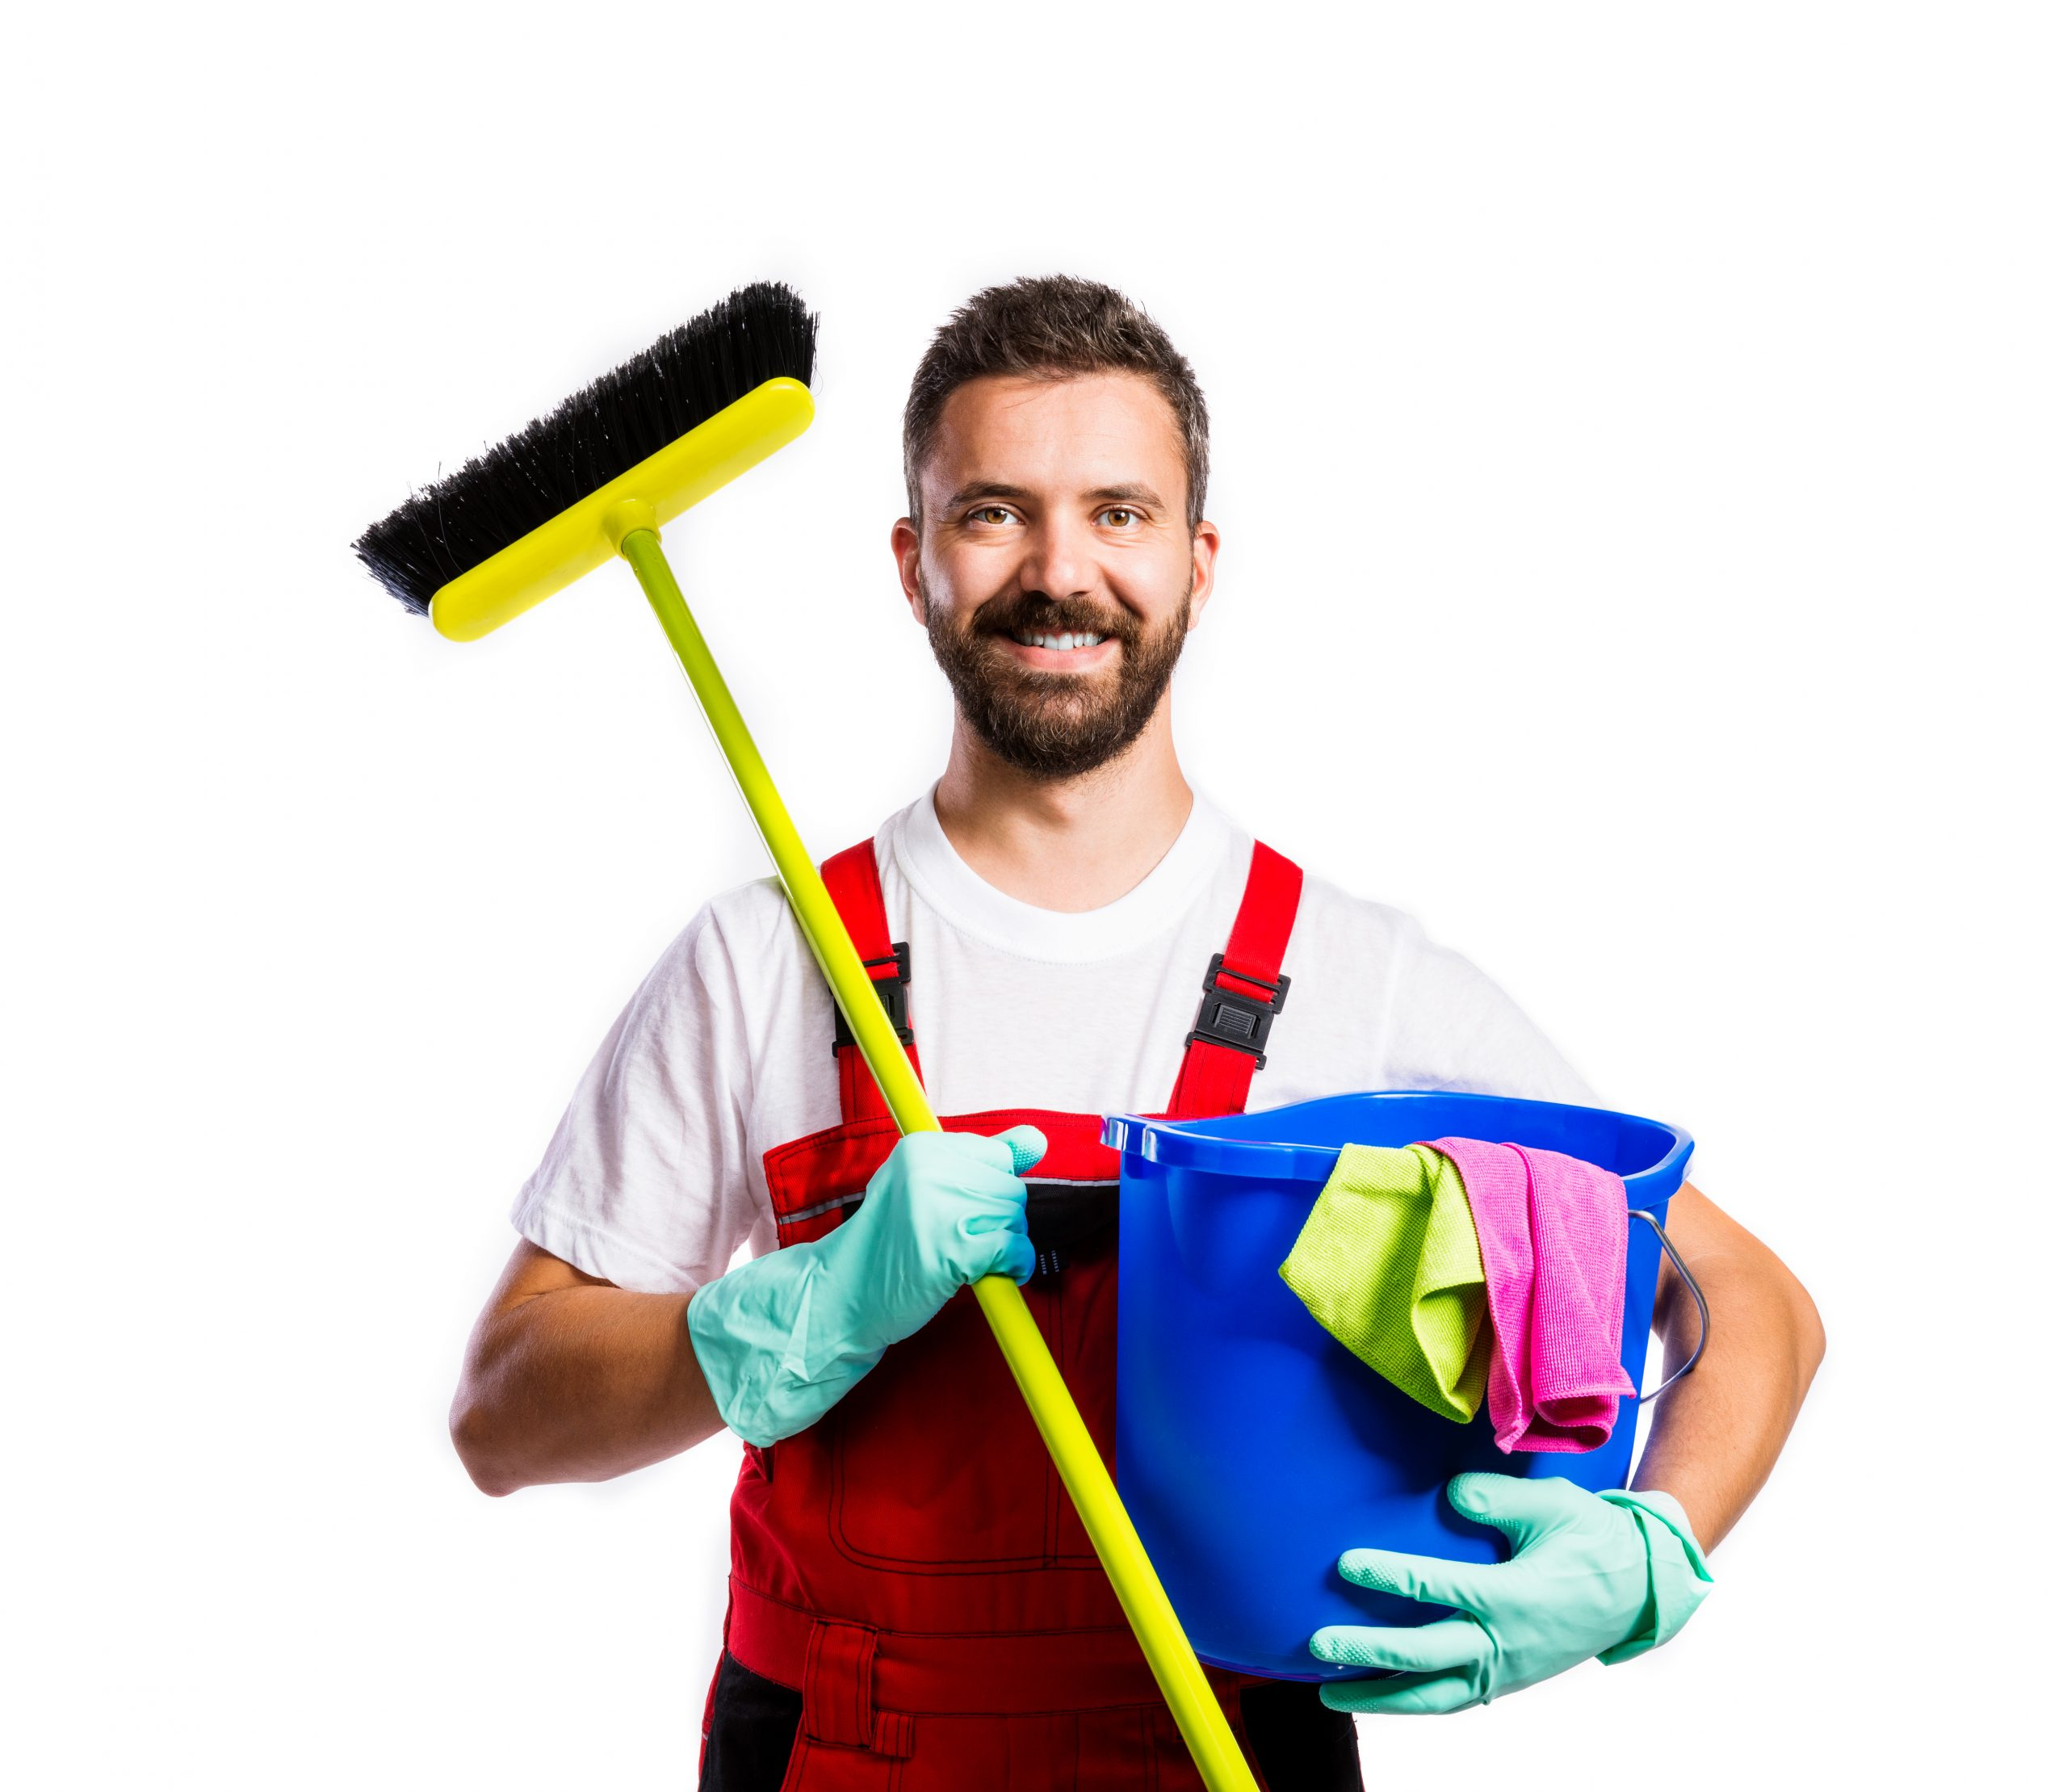 Cleaning and Janitorial Services More Important Than Ever